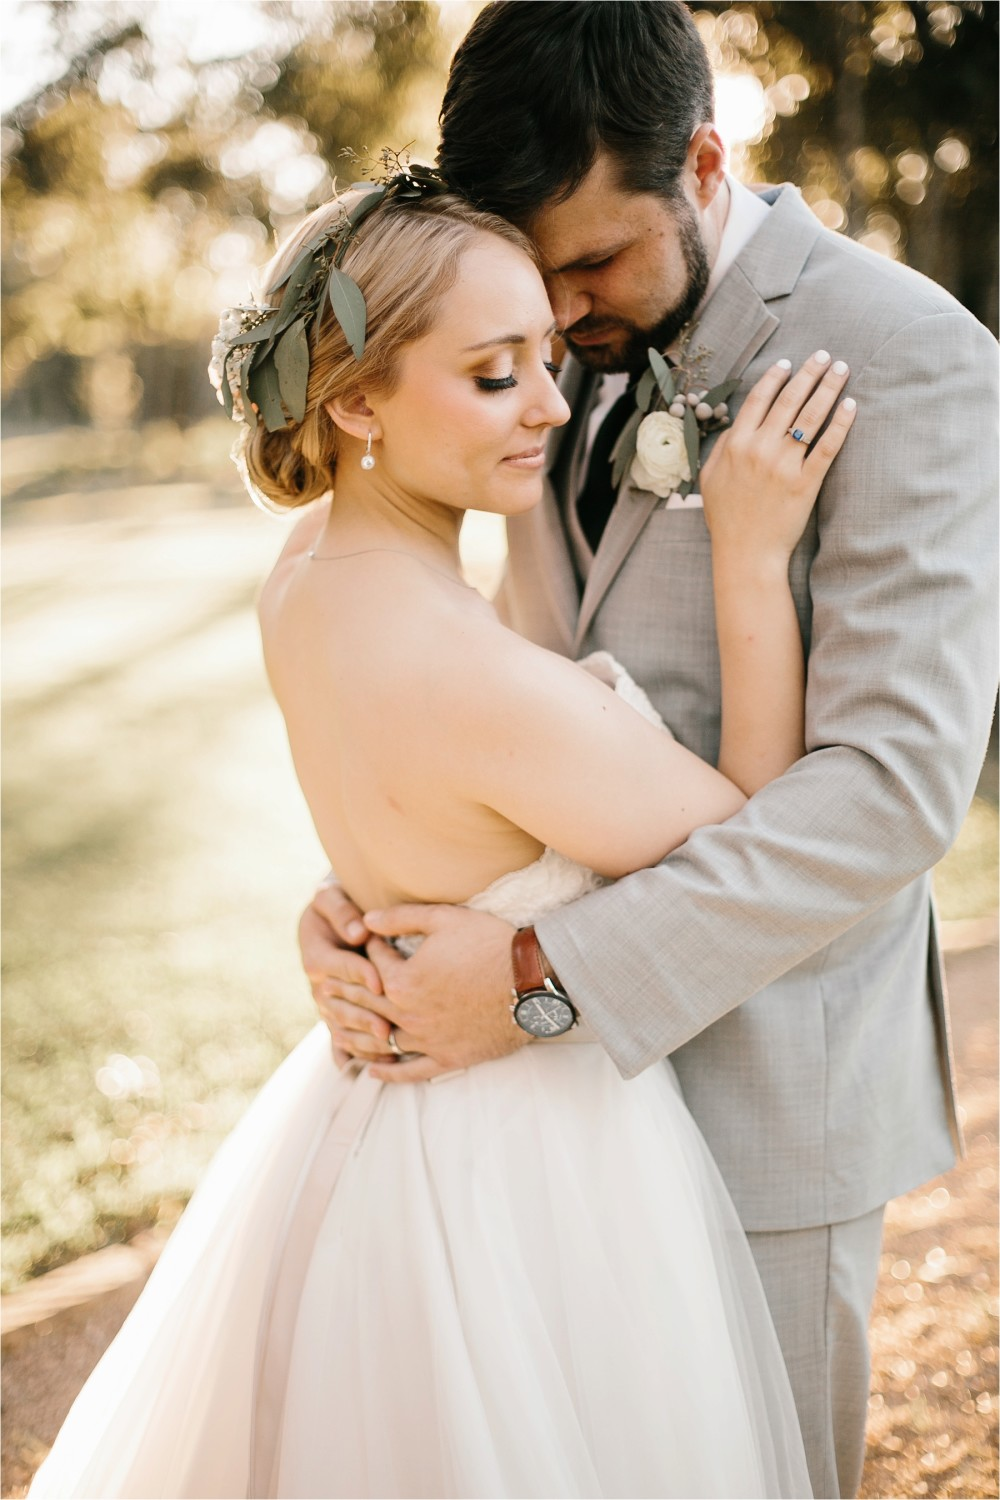 brad-lara-__-a-grey-and-blush-pink-intimate-wedding-at-hidden-waters-event-center-in-waxahachie-tx-by-north-texas-wedding-photographer-rachel-meagan-photography-_-063